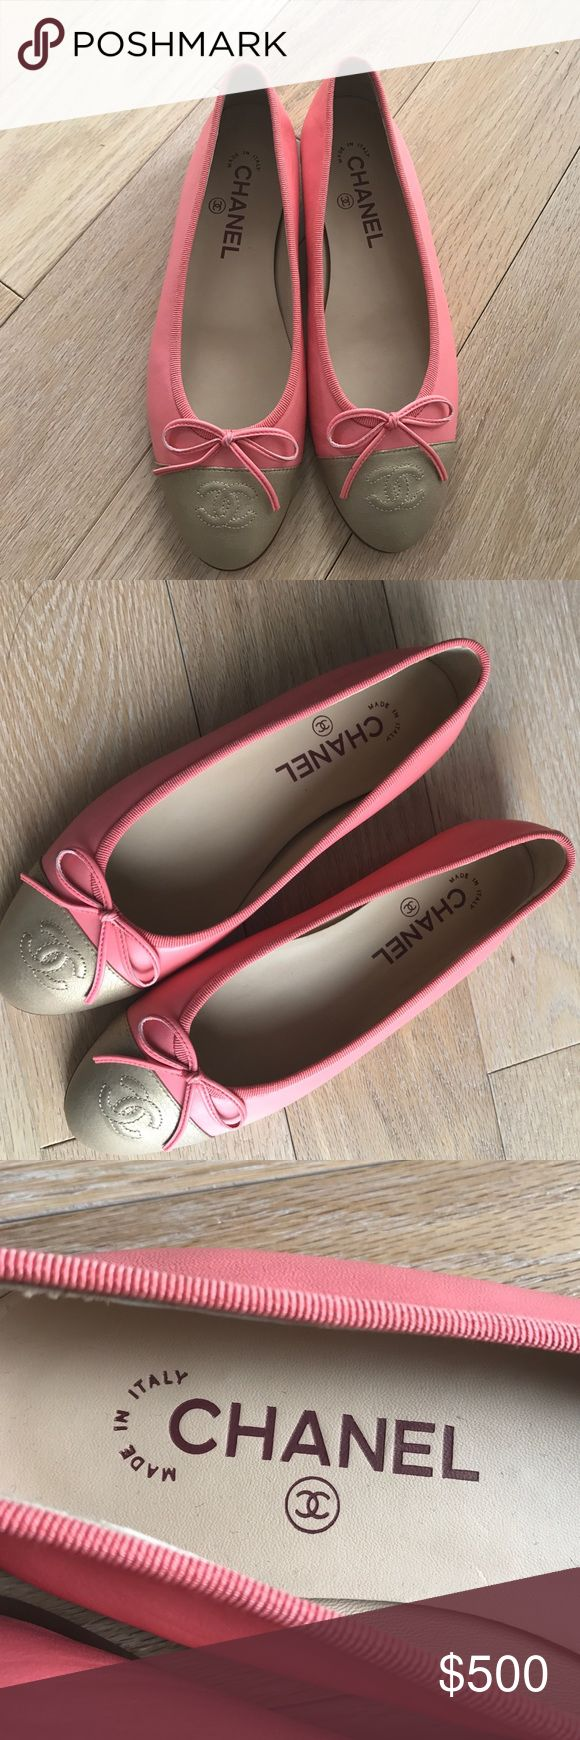 Chanel leather ballerina flats Never worn. Authentic. Rose color, matte gold tip. Purchased from Saks, comes with dustbag and box. No trades, Price firm! CHANEL Shoes Flats & Loafers